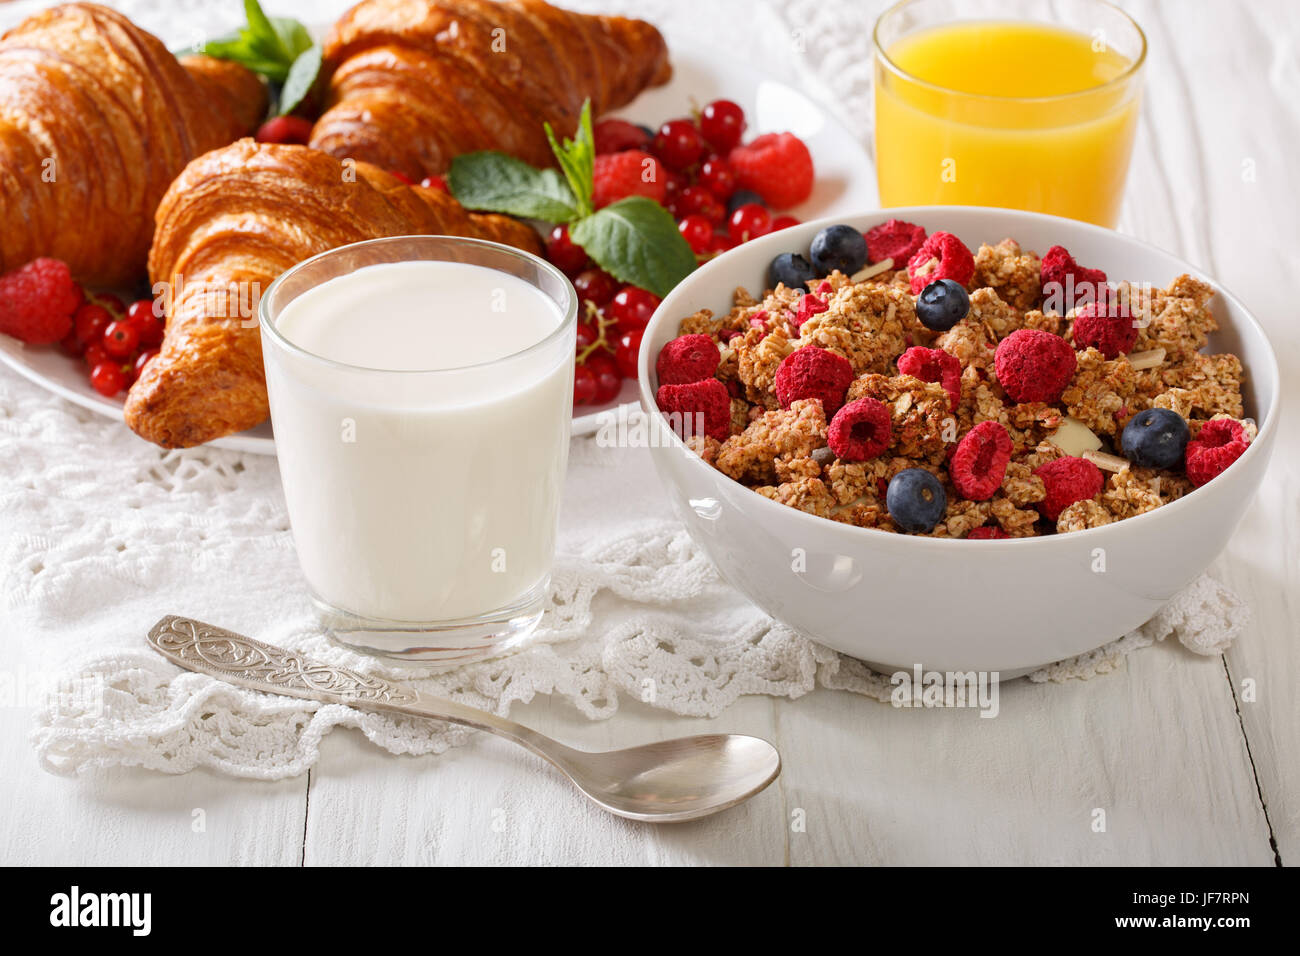 Homemade granola with berries, croissants, milk and juice closeup on the table. horizontal Stock Photo